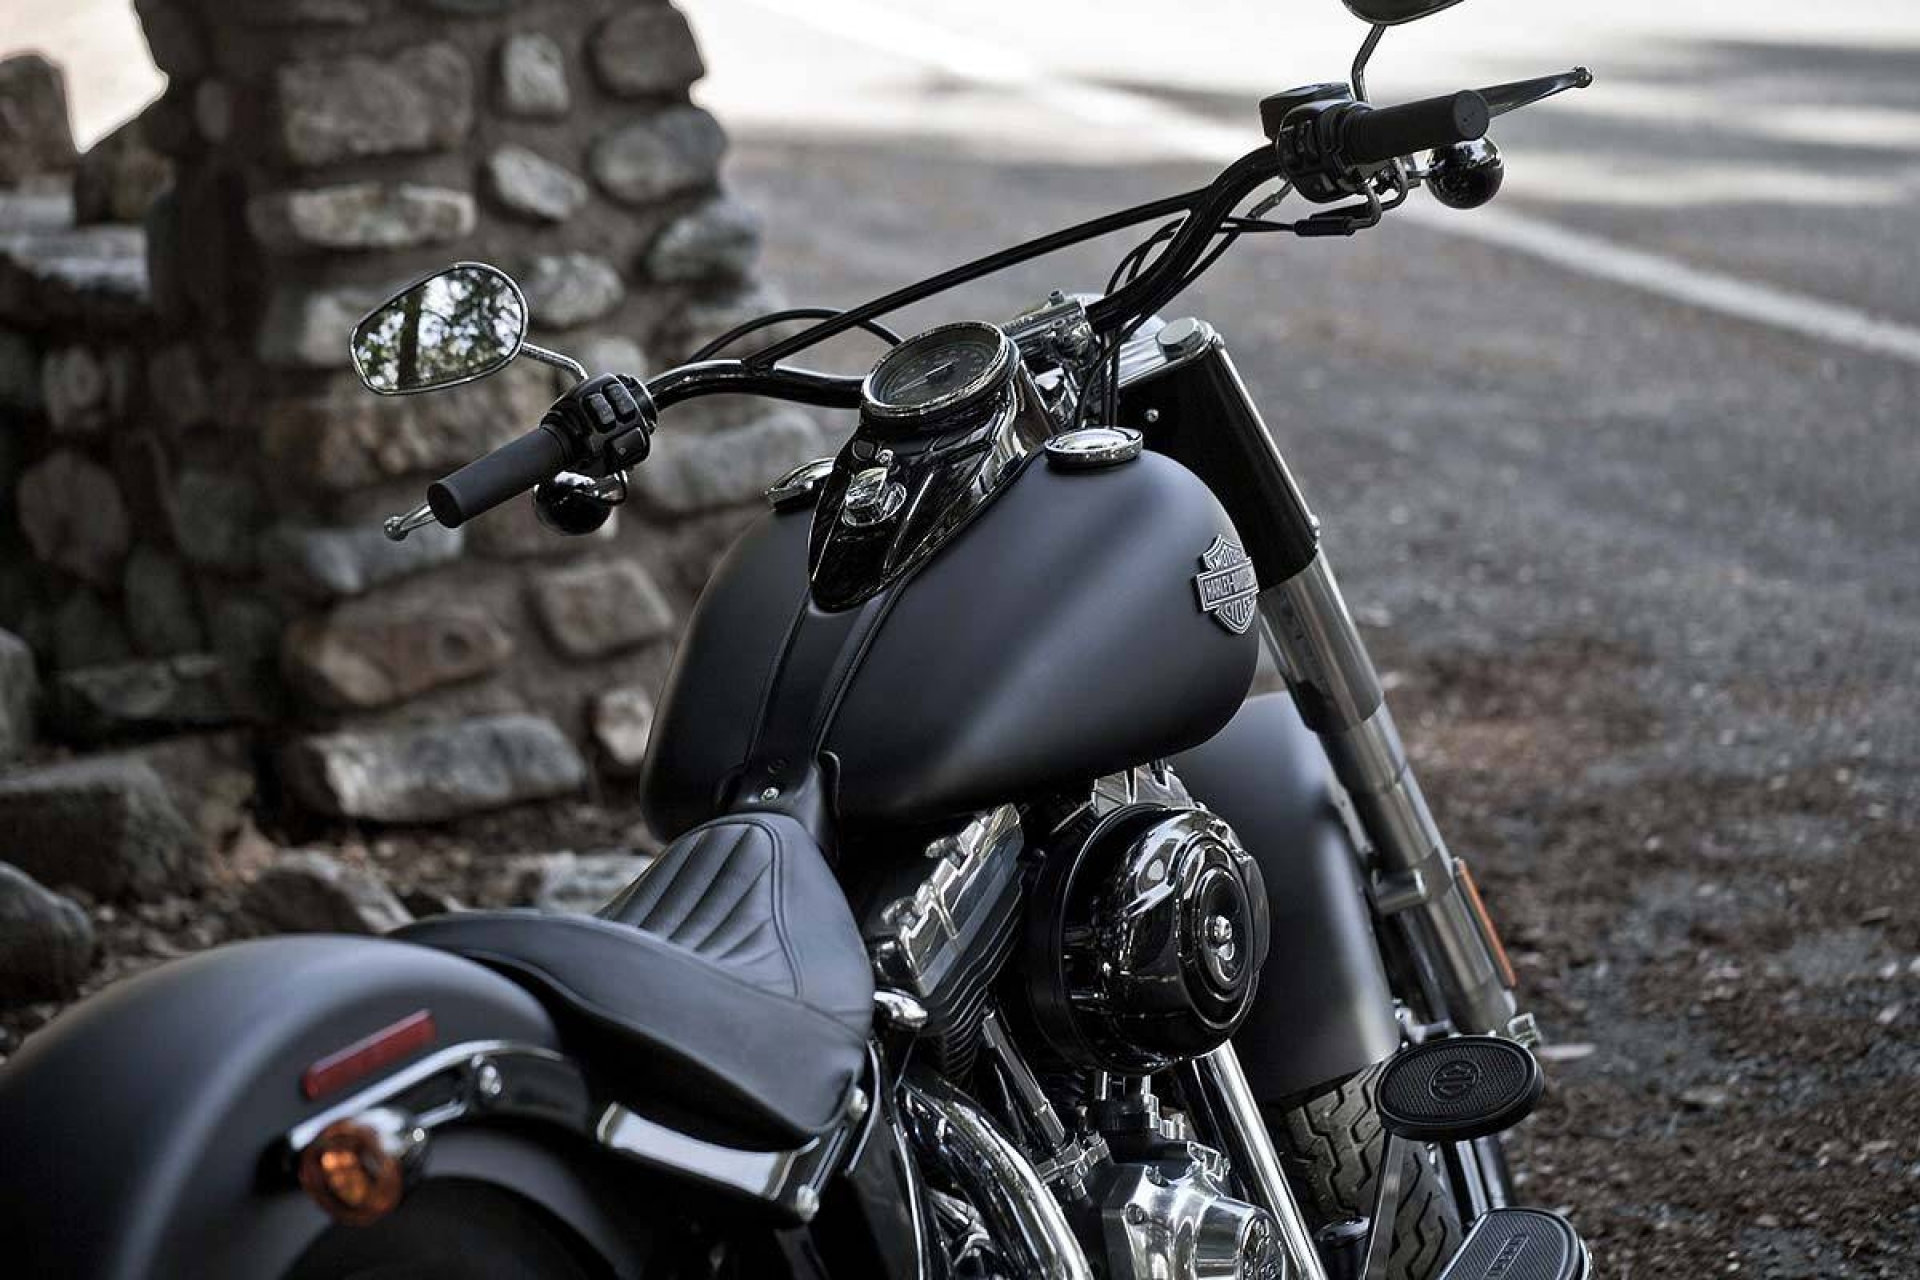 Black Motorcycle Harley Davidson Wallpaper Bes 10709 Wallpaper High 1920x1280